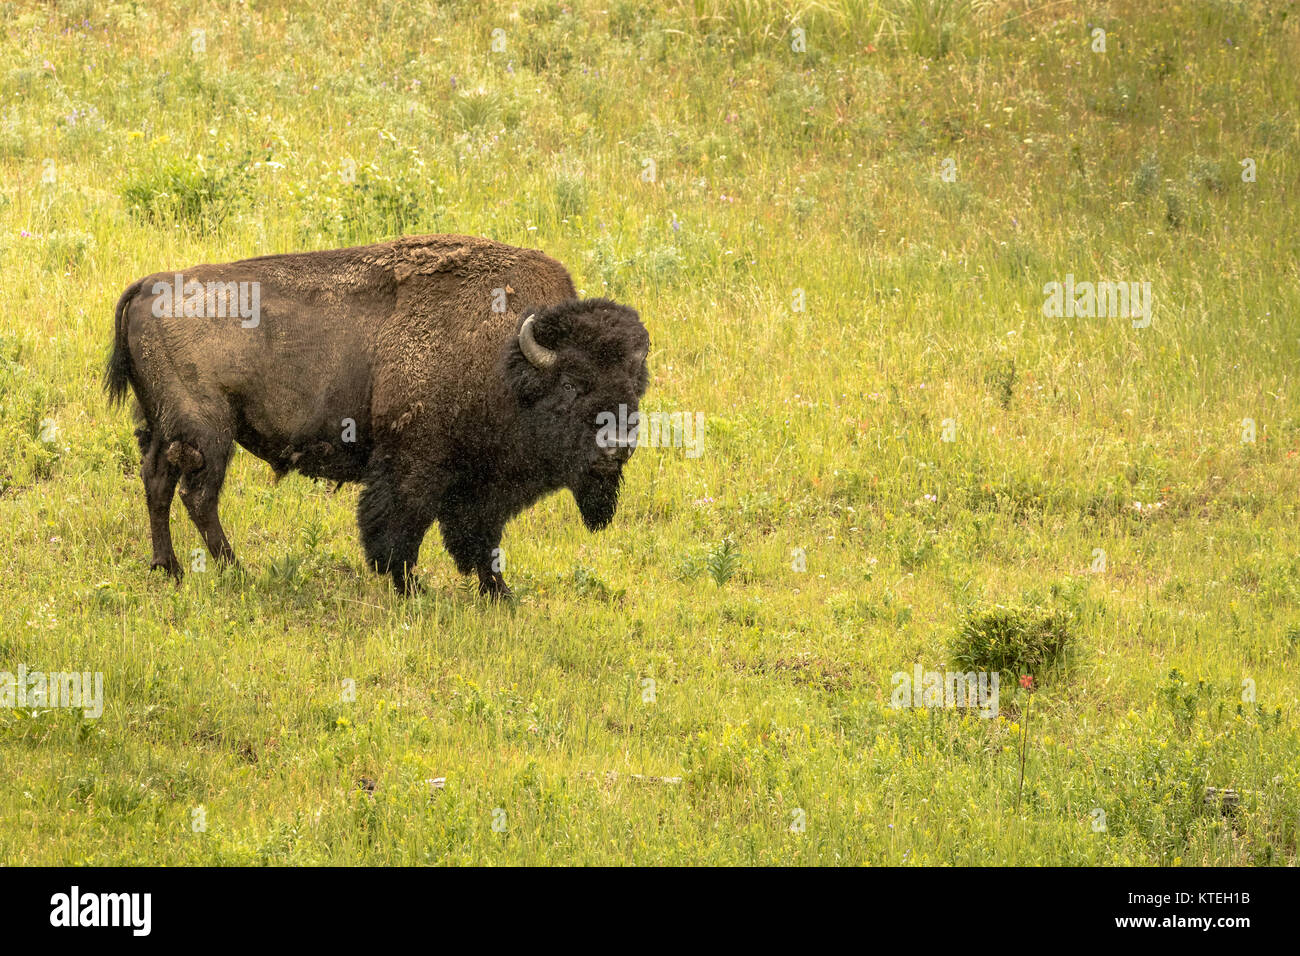 American Bison in Yellowstone National Park. - Stock Image